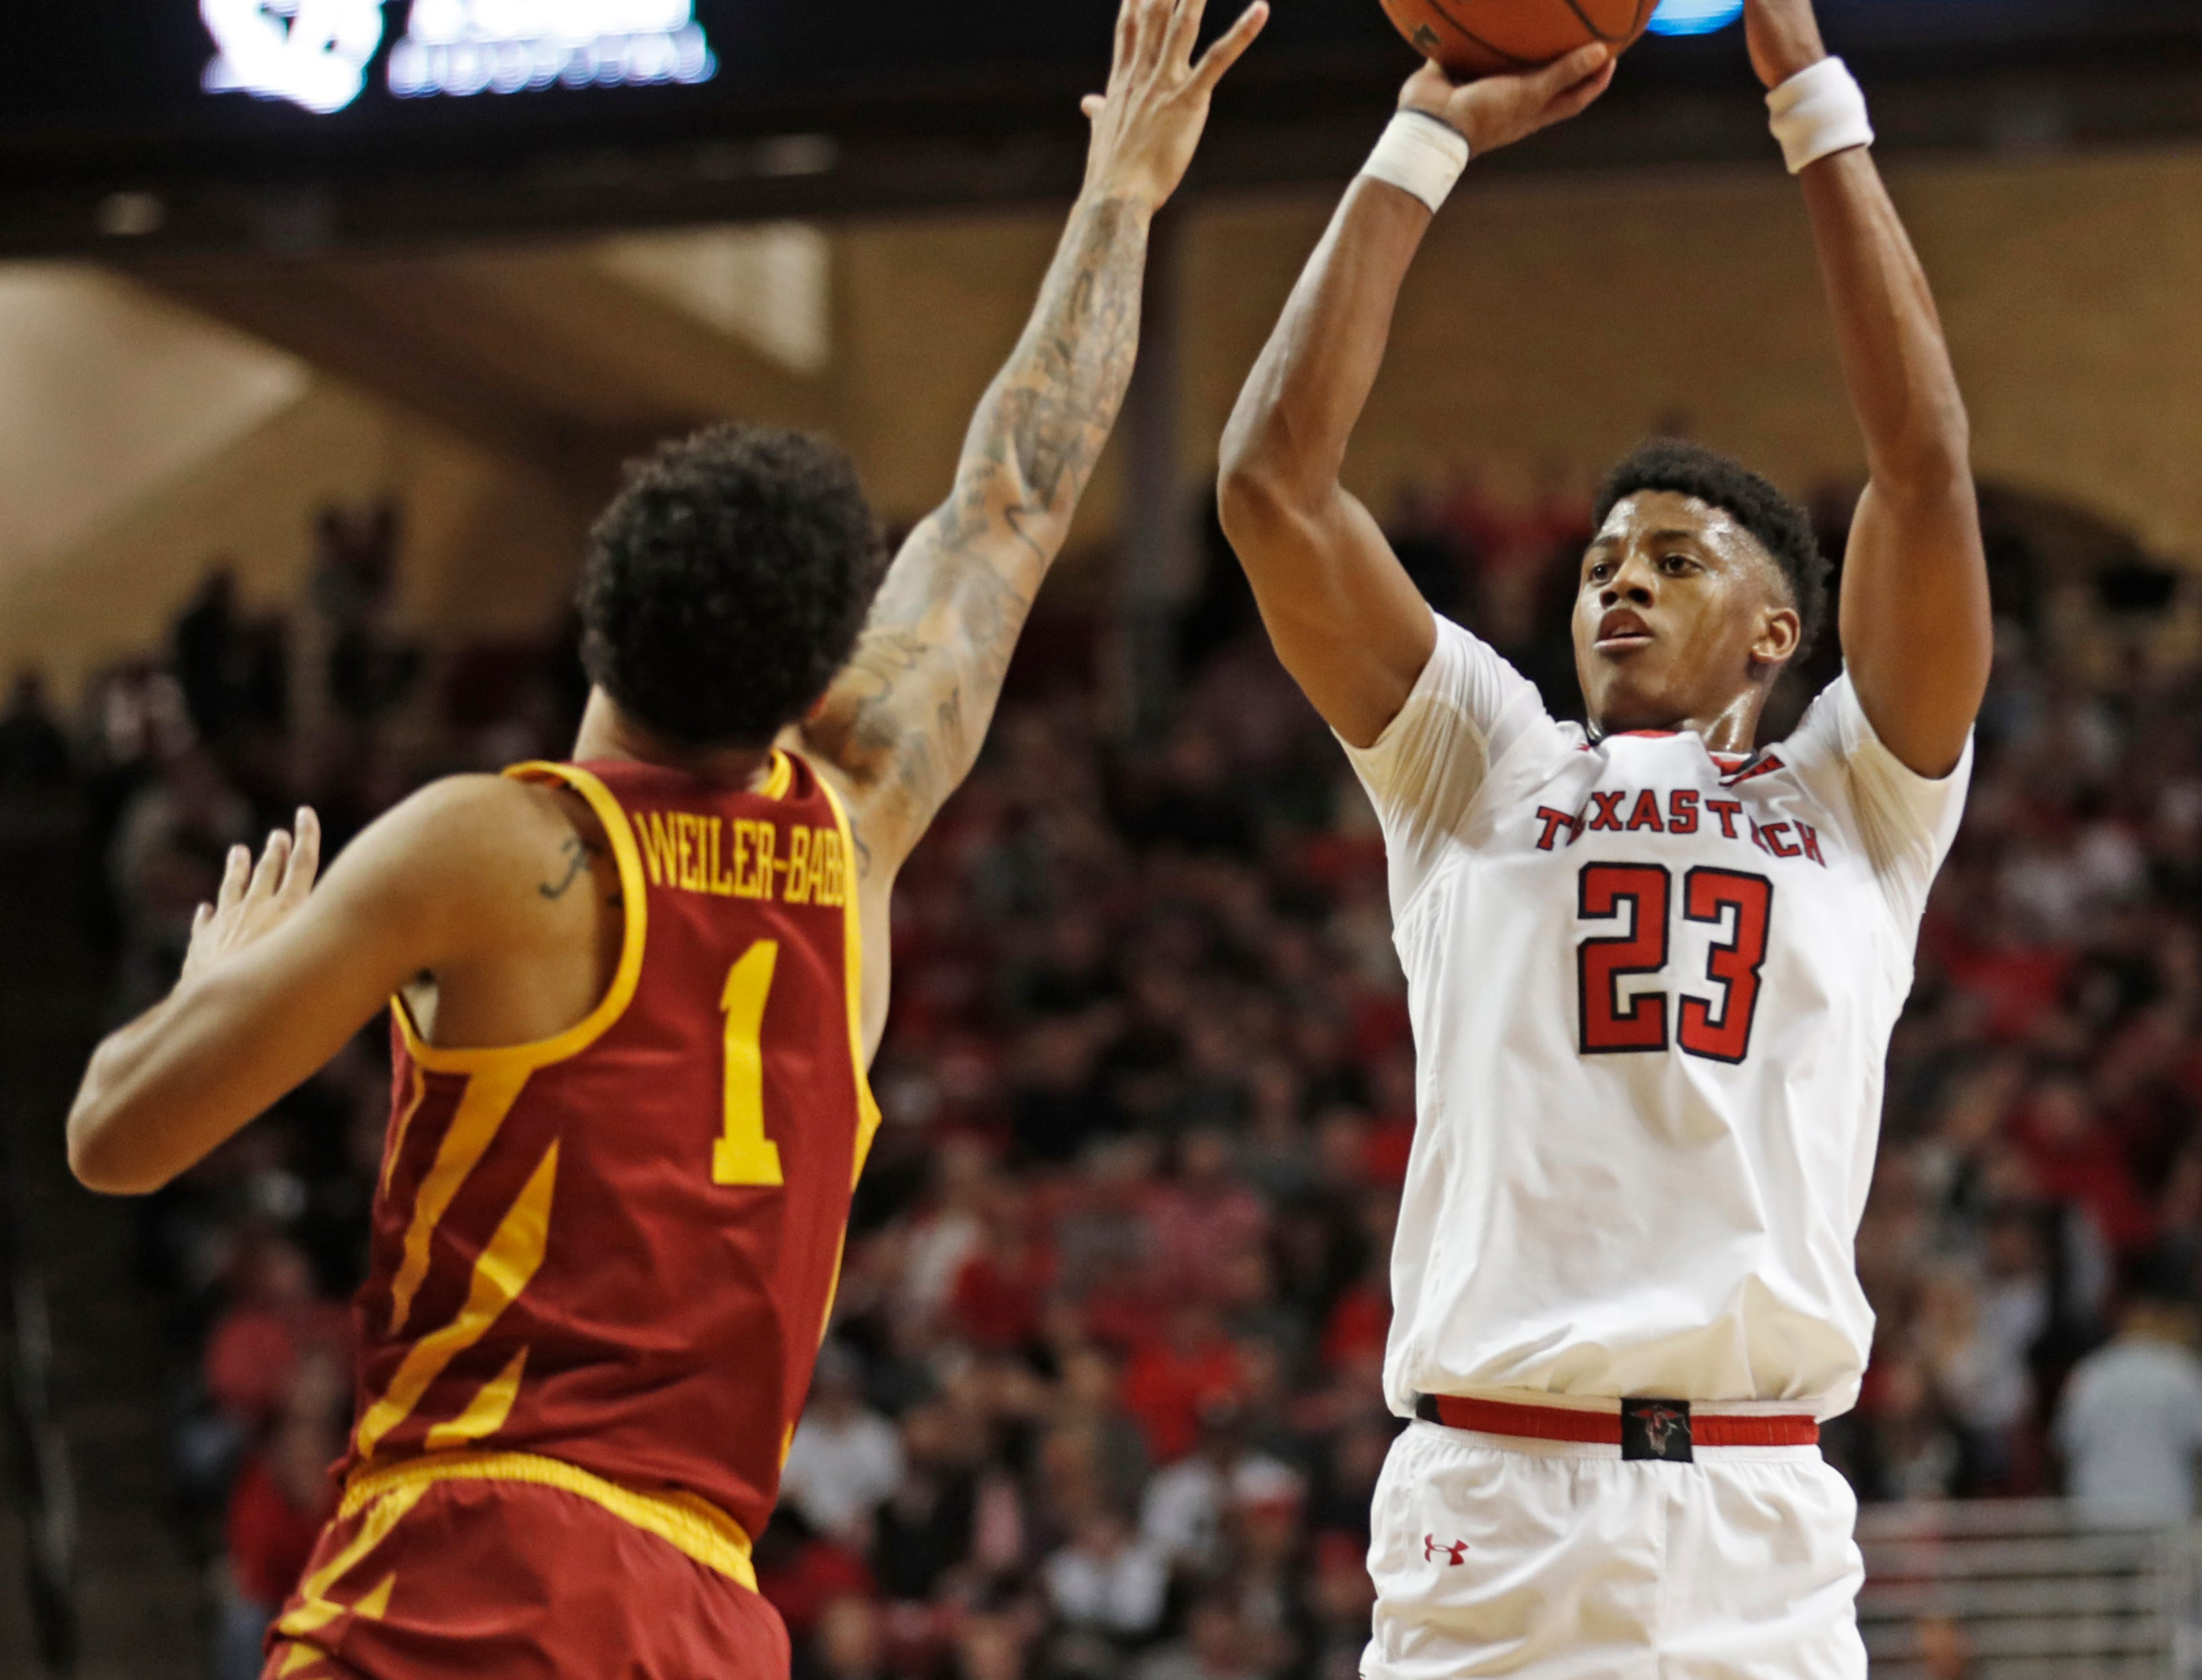 Texas Tech's Jarrett Culver (23) shoots over Iowa State's Nick Weiler-Babb (1) during the first half of an NCAA college basketball game Wednesday, Jan. 16, 2019, in Lubbock, Texas.